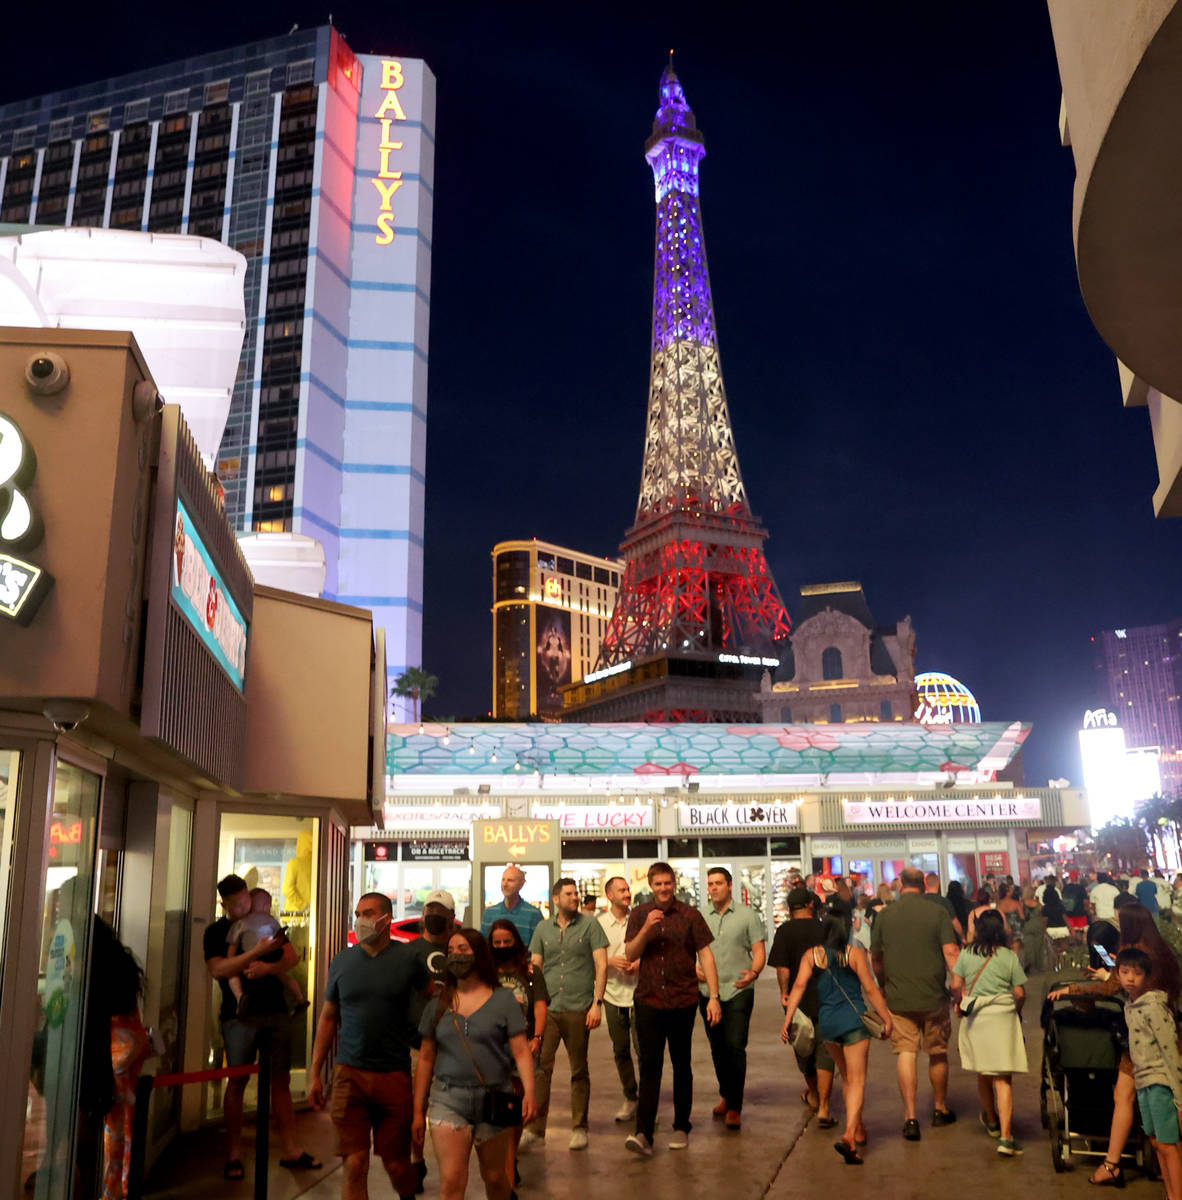 Crowds in front of Ballys on the Strip in Las Vegas Friday, May 28, 2021. (K.M. Cannon/Las Vega ...